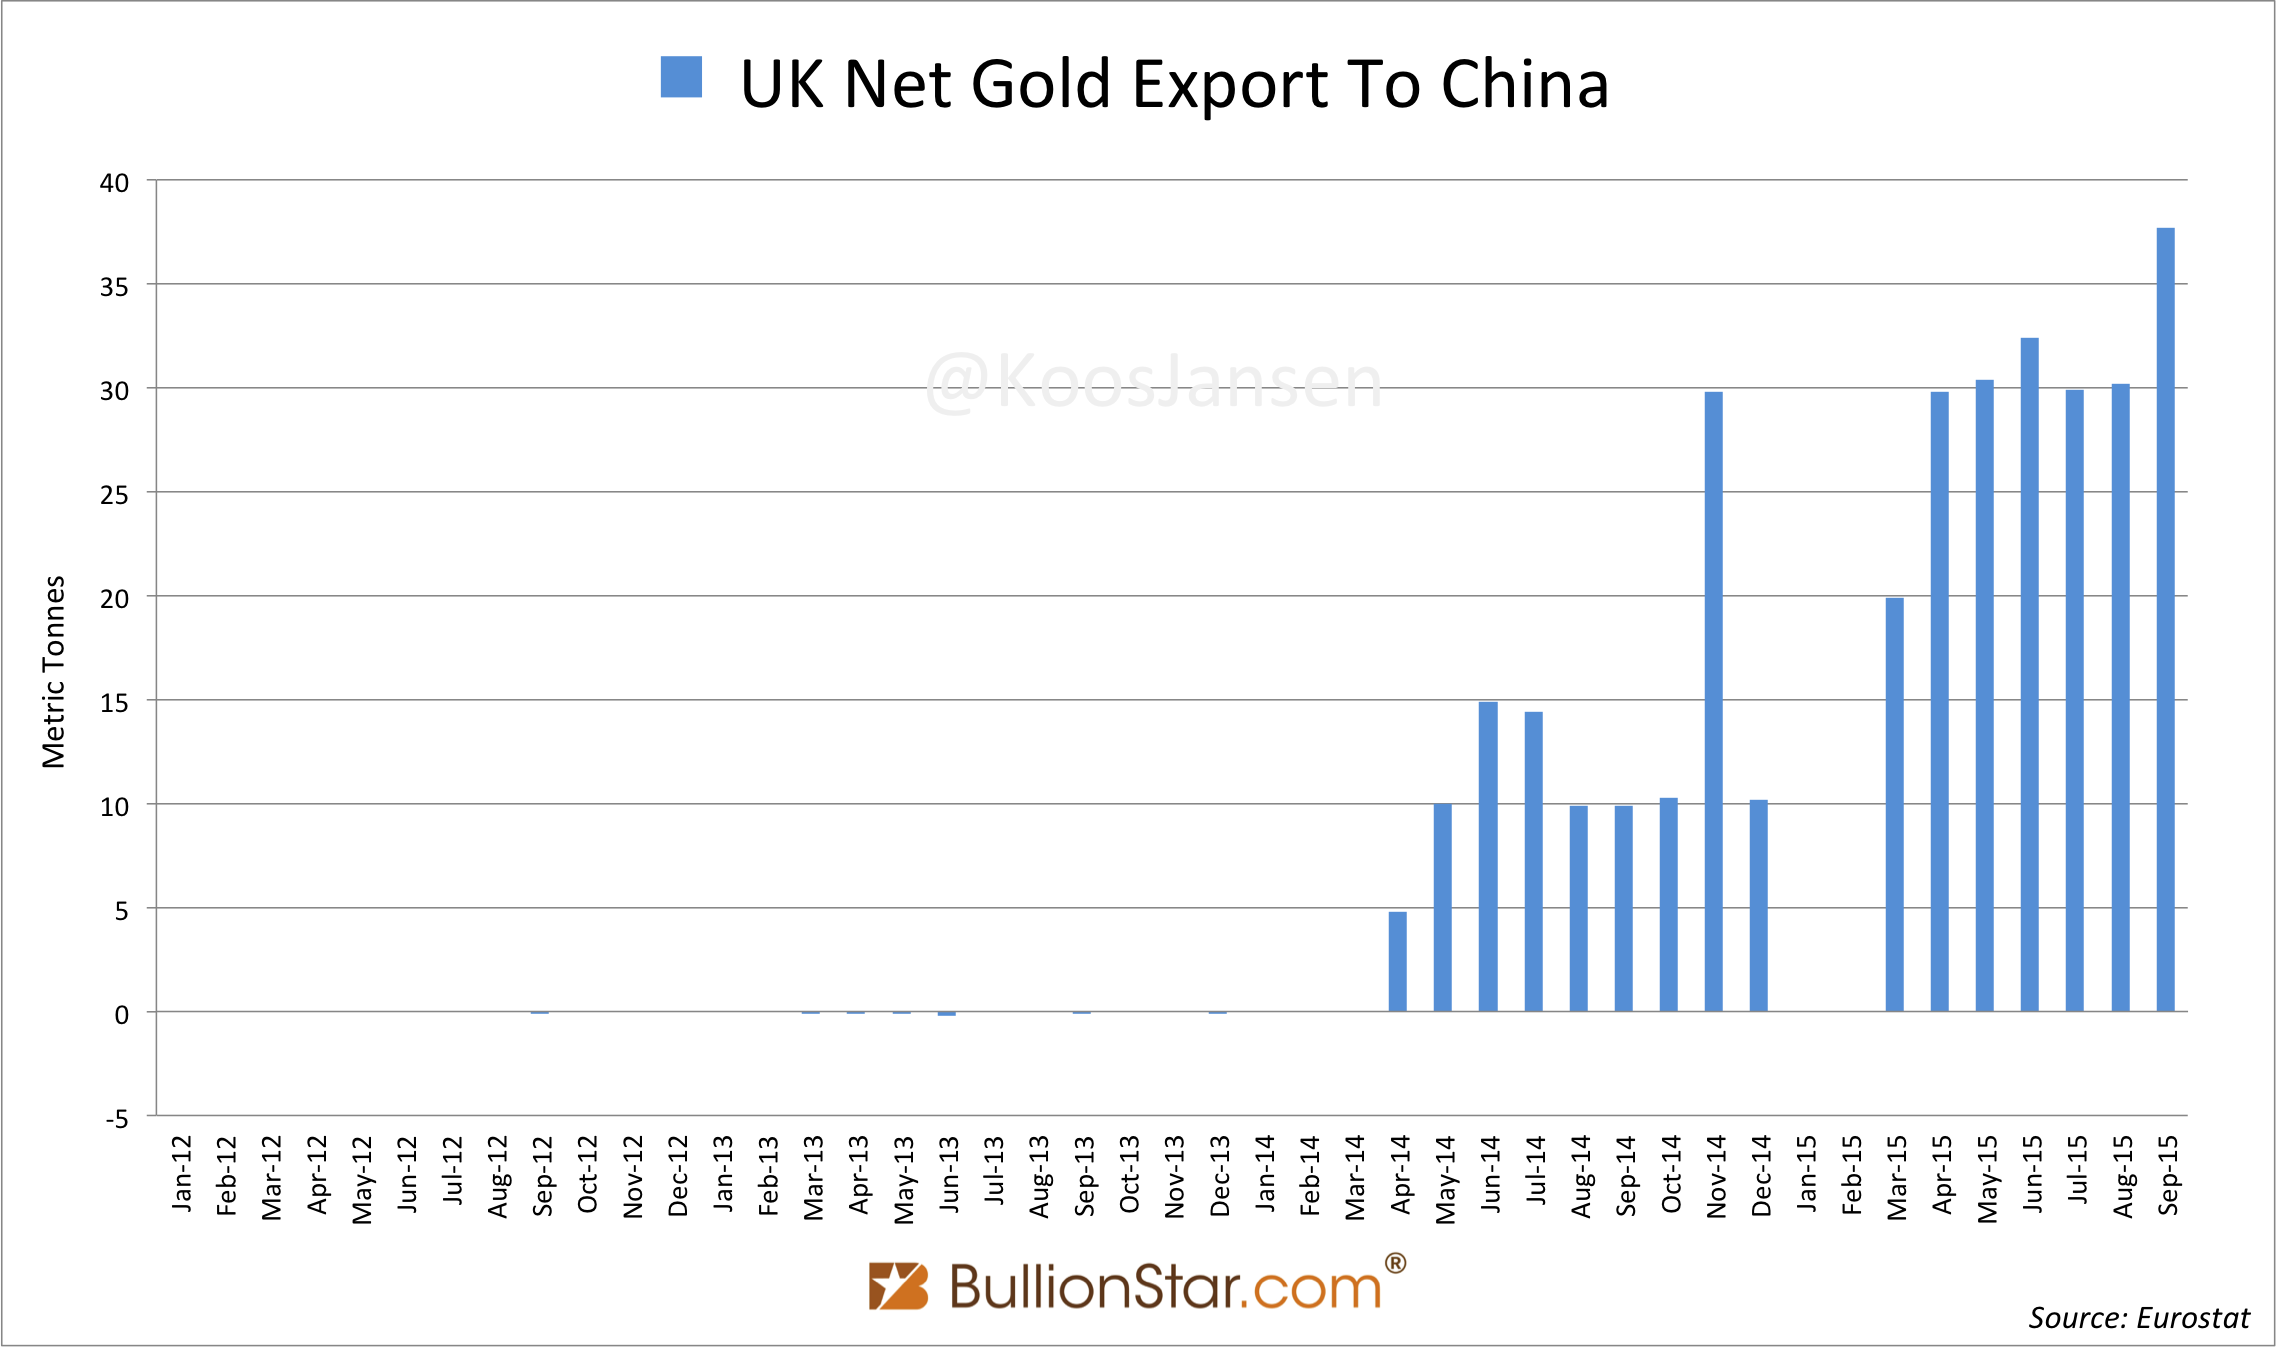 UK Gold Export To China Hit Record In September, Chinese Gold Import